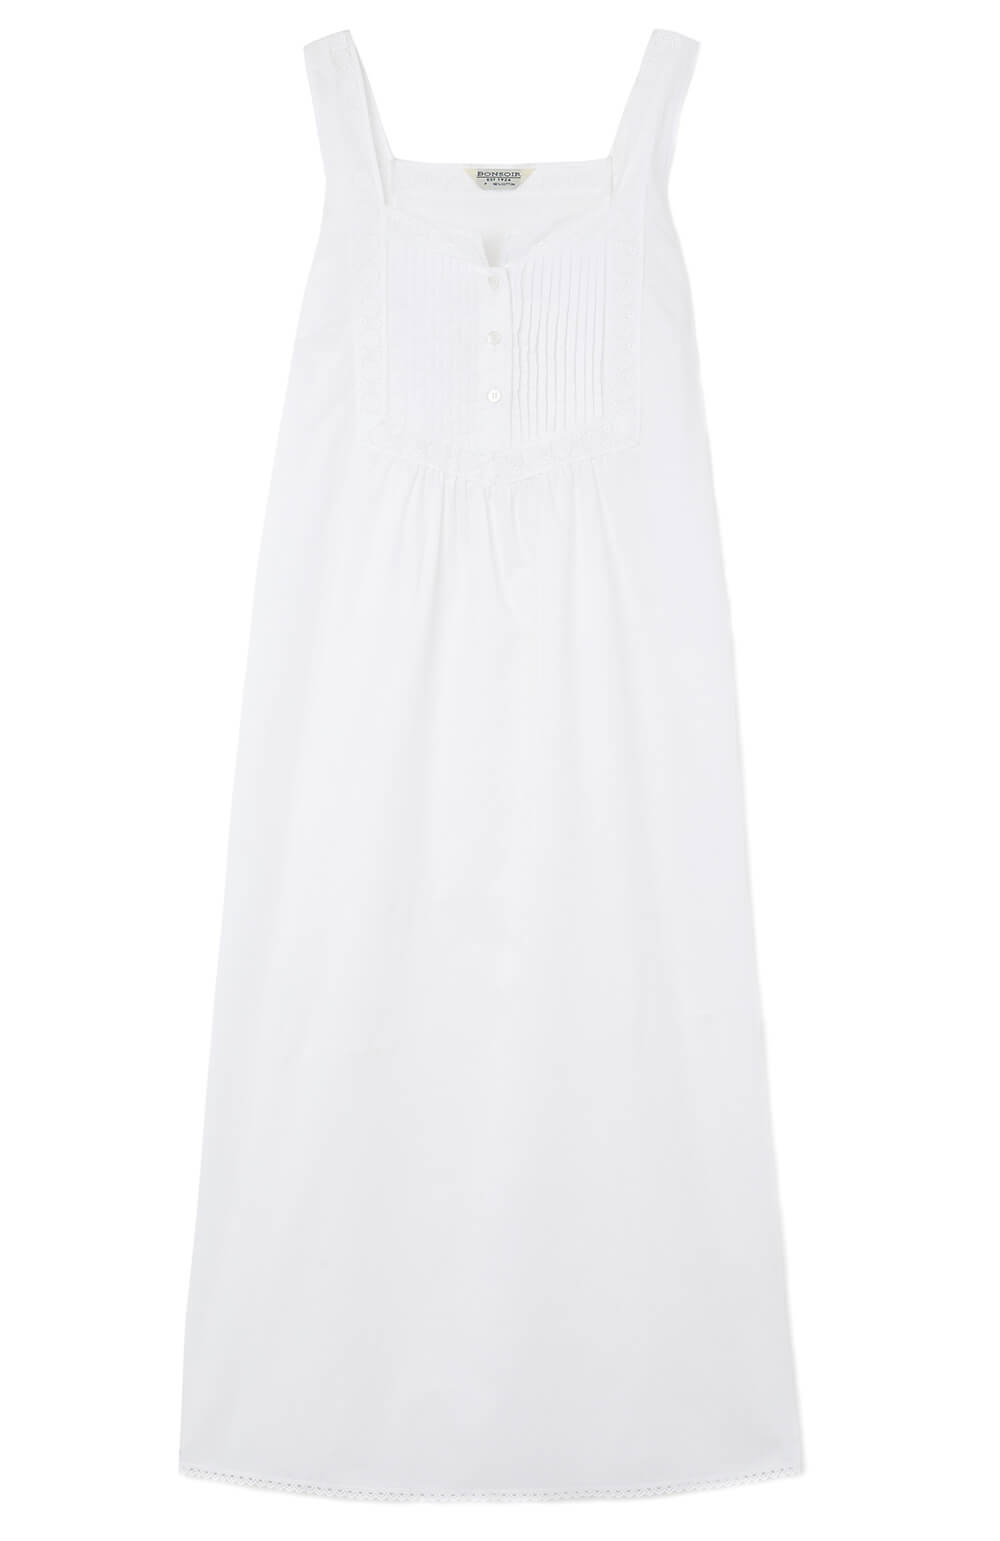 Women's Eliza White Nightdress | Bonsoir of London